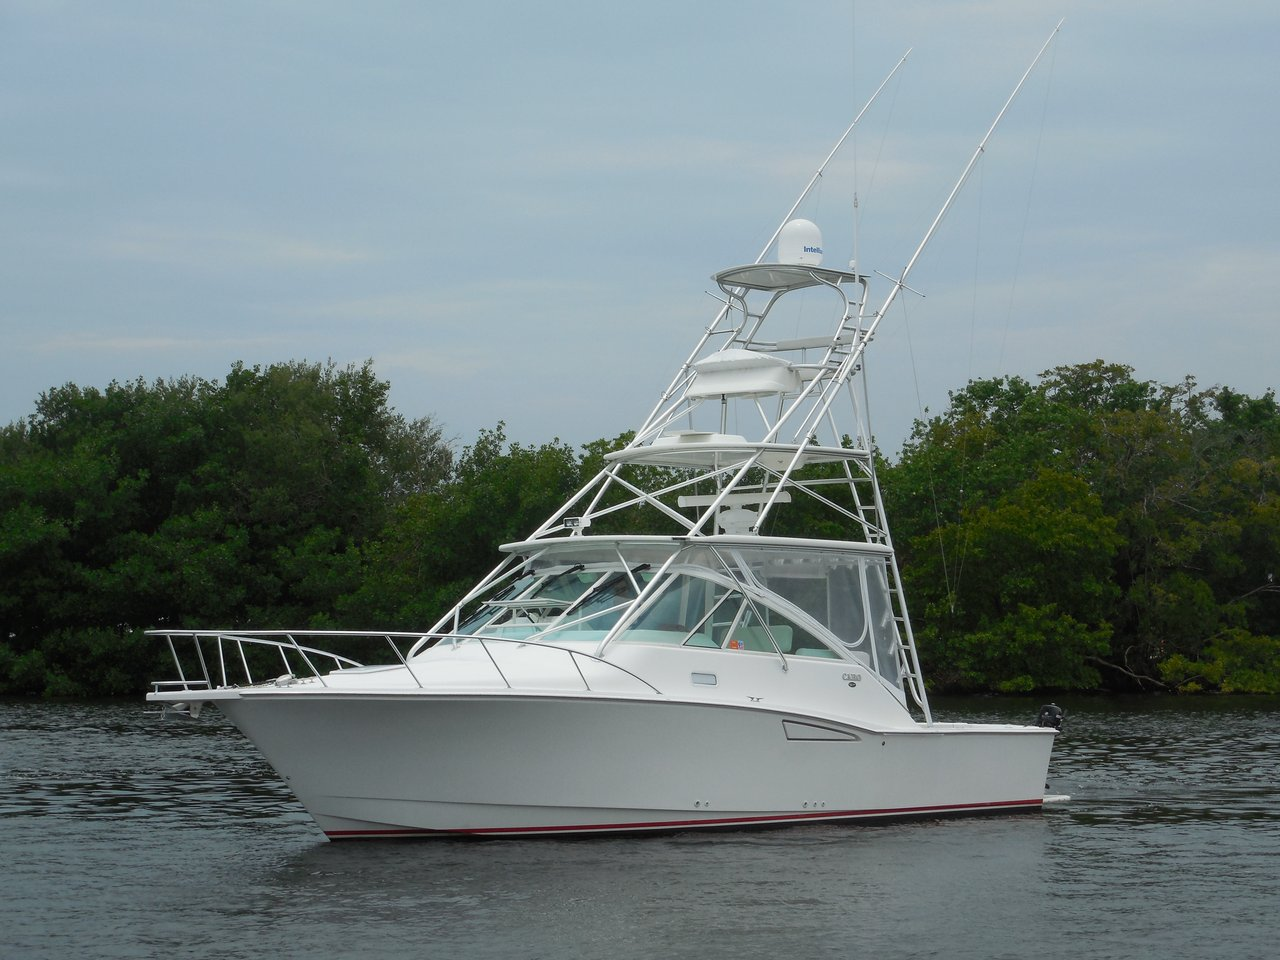 2006 used cabo 35 express sports fishing boat for sale for Express fishing boats for sale